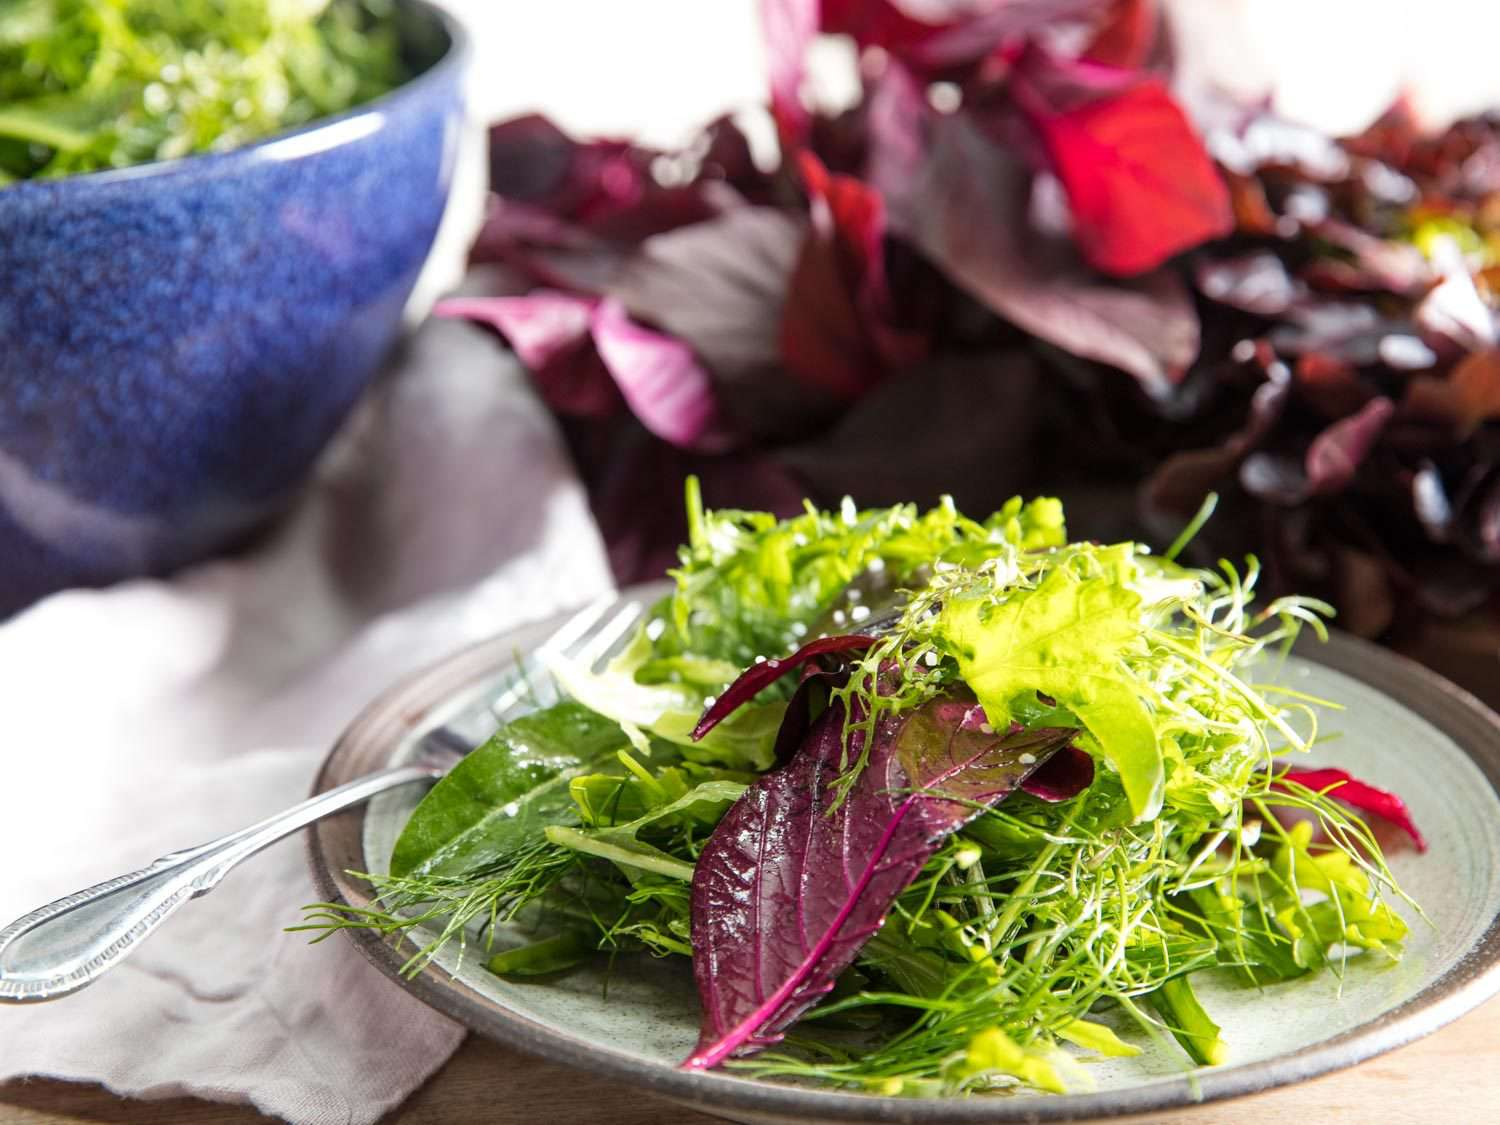 Ceramic plate of Roman-Inspired Mixed-Green Salad (Misticanza alla Romana) with salad greens in the background